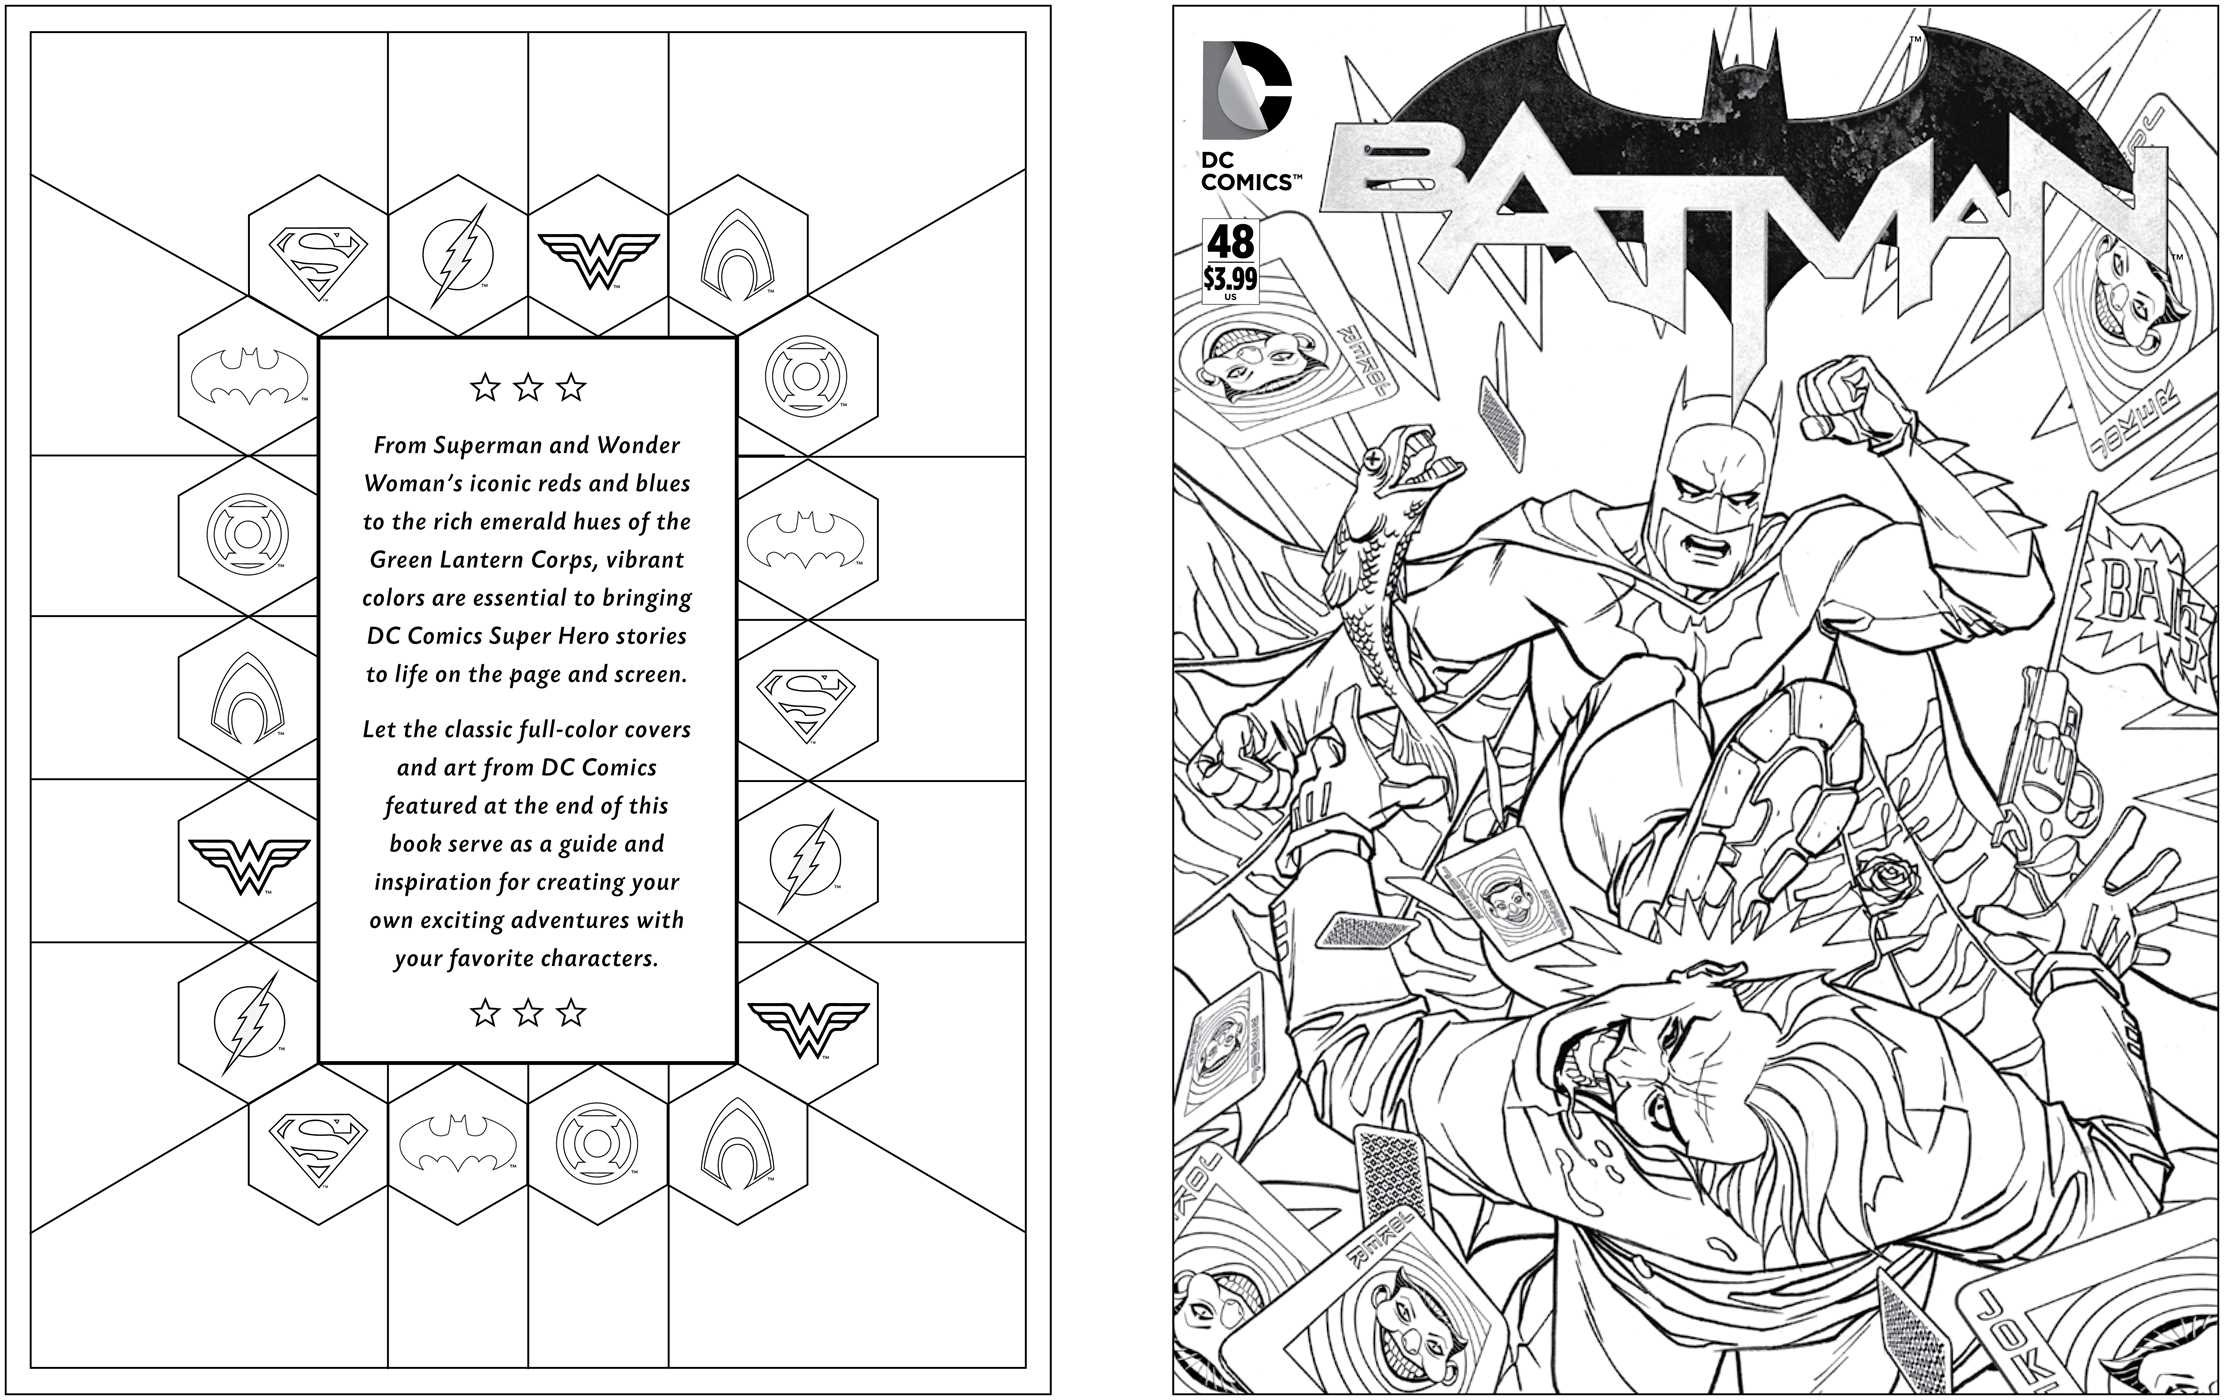 Coloring book quinn - Amazon Com Dc Comics Coloring Book 9781608878291 Insight Editions Books